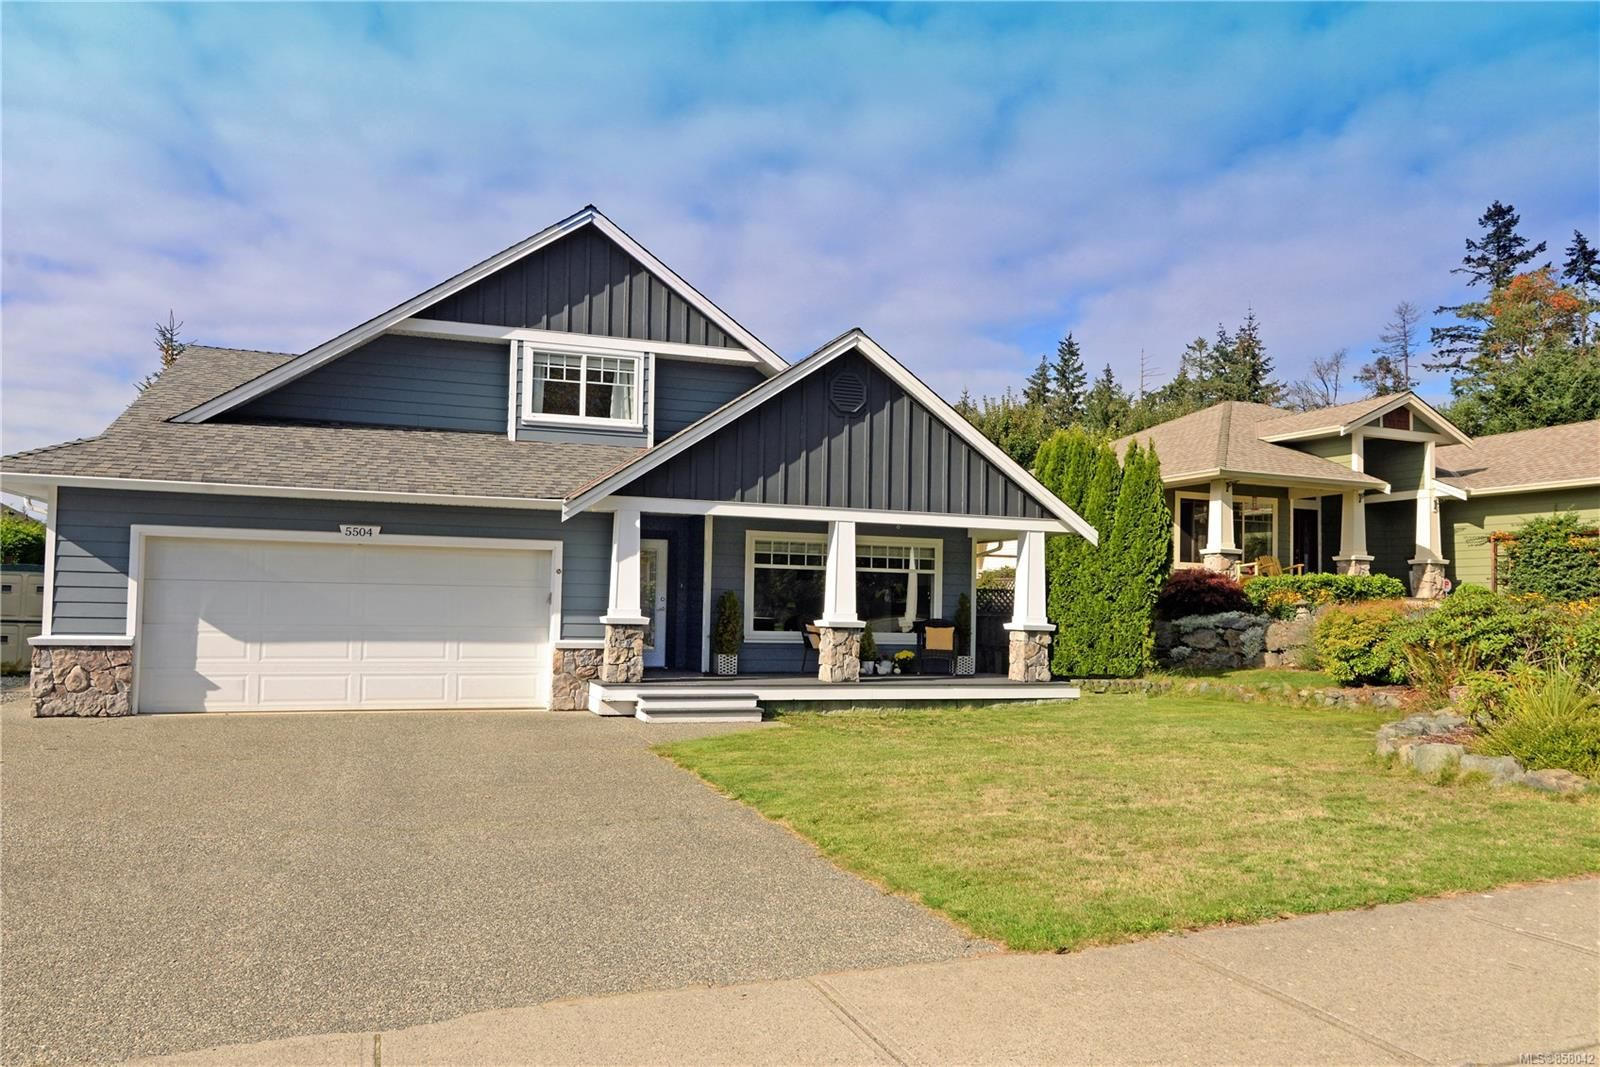 Main Photo: 5504 Cliffside Rd in : Na North Nanaimo House for sale (Nanaimo)  : MLS®# 858042